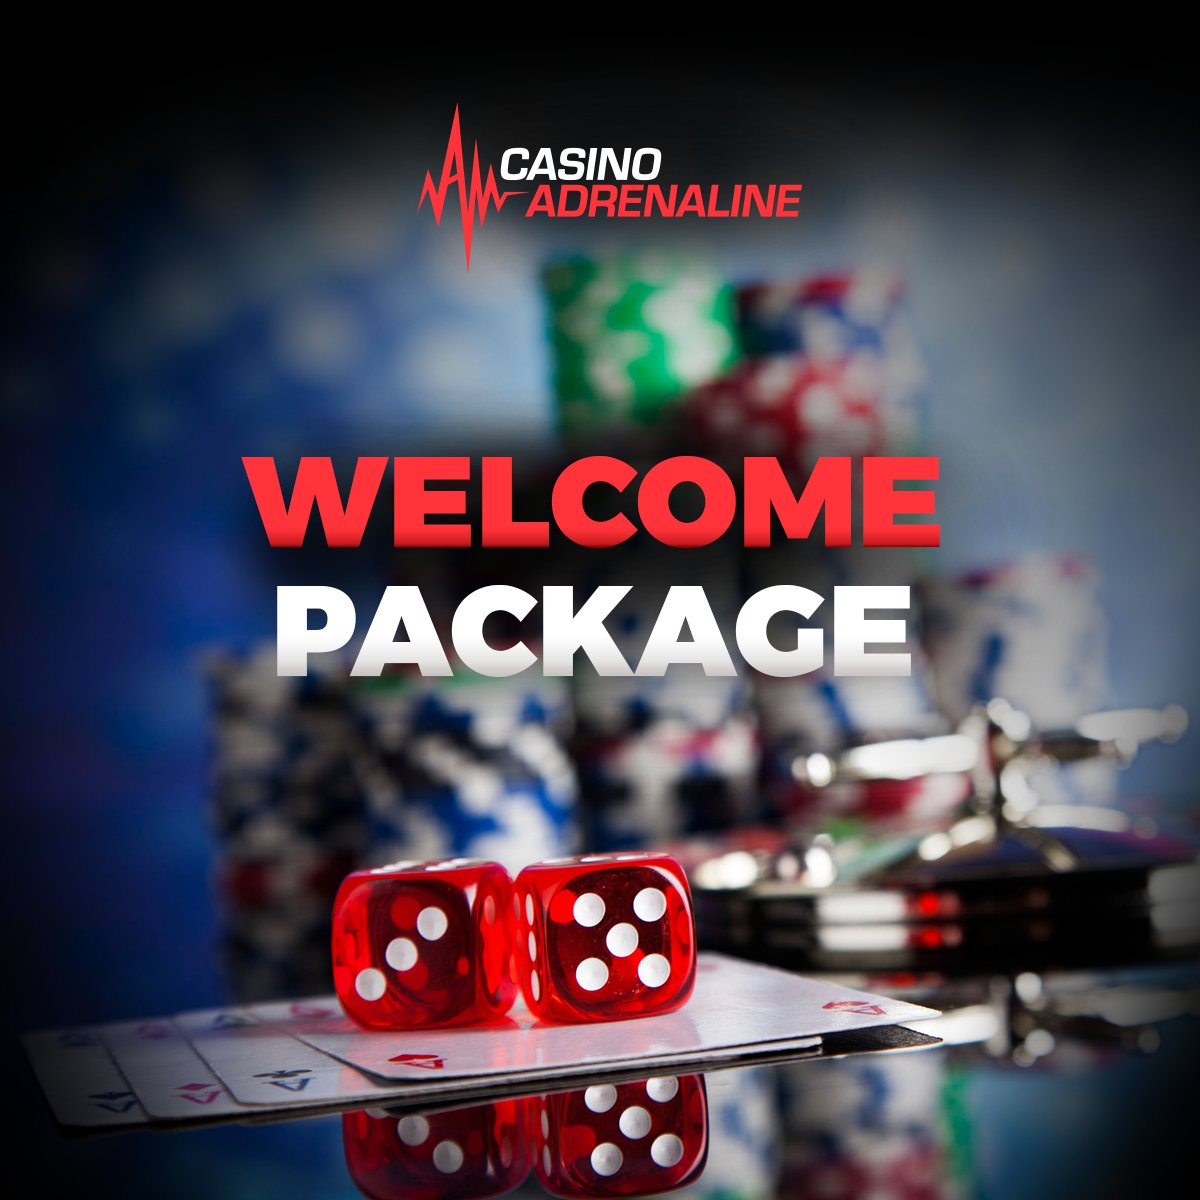 test Twitter Media - If you're a new player, check out our welcome package! 😁 #CasinoAdrenaline #enjoythegame #welcomepackage https://t.co/RZQiTYjFVn